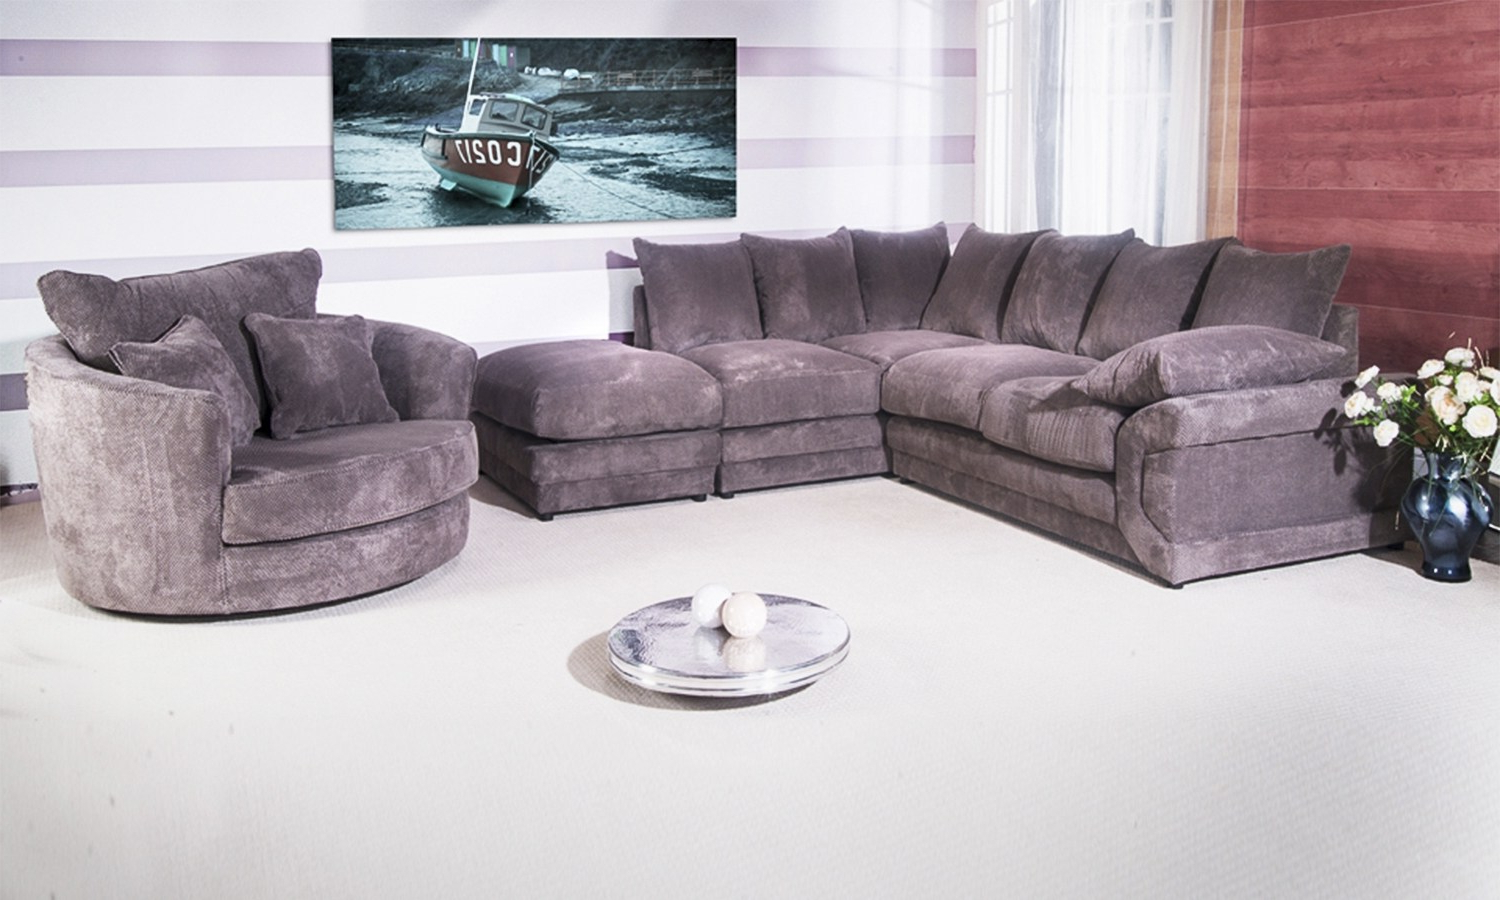 Sofa Bed Boston Energywarden Pertaining To Corner Sofa And Swivel Chairs (View 9 of 20)